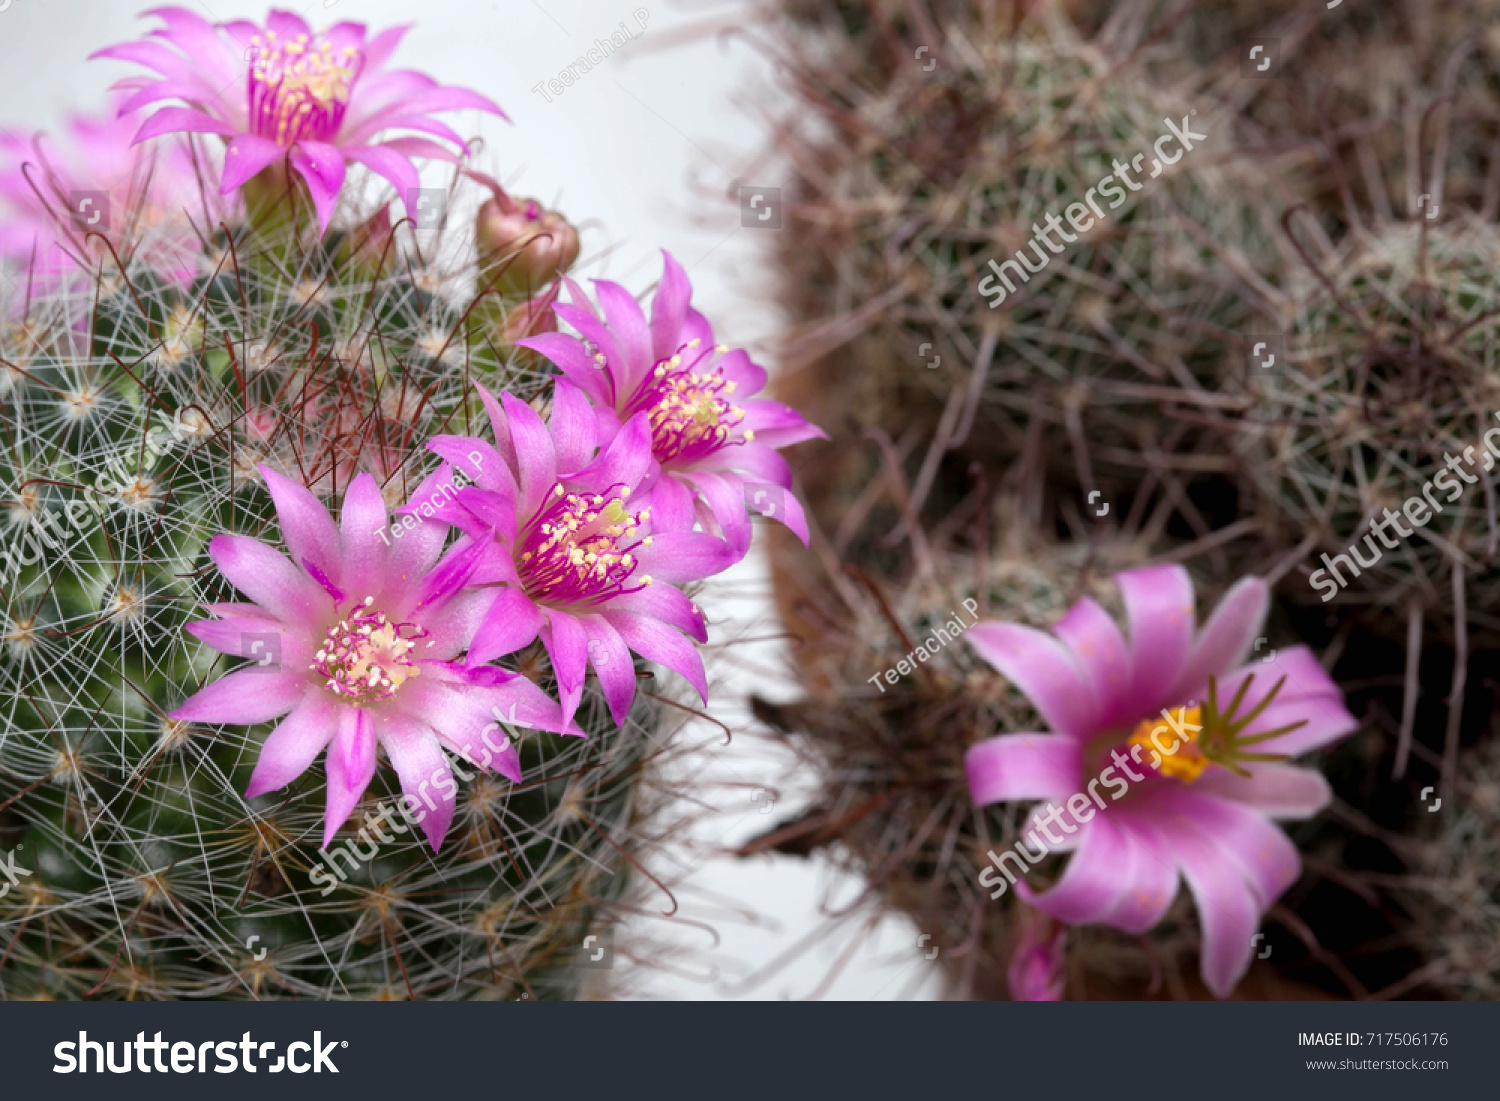 Pink Flowers Of Cactus Is Blooming Very Beautiful Plant Although Its